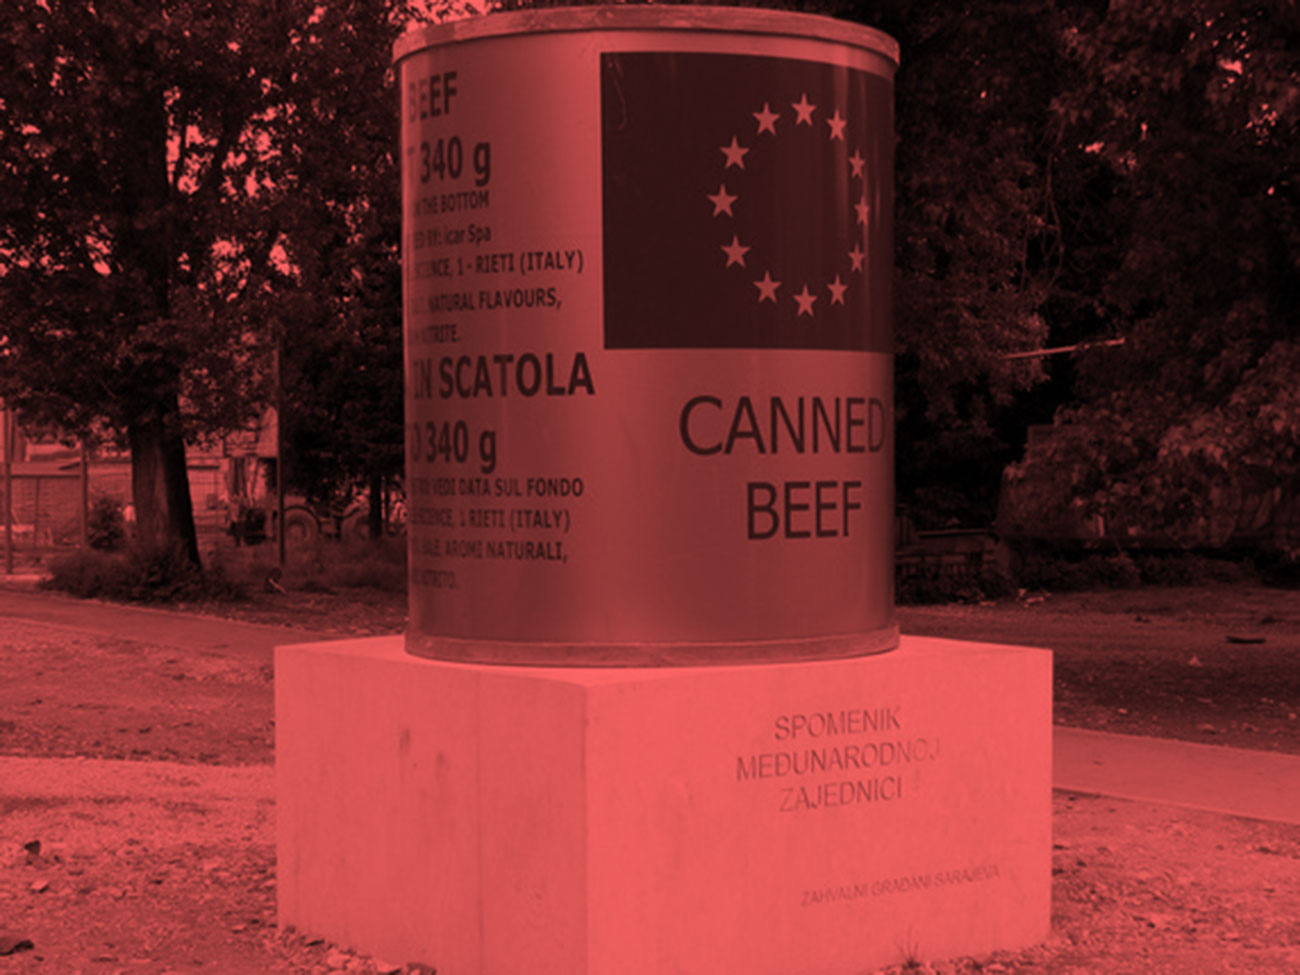 Monument to the International Community by the grateful citizens of Sarajevo © Nebojsa Seric Shoba, Sarajevo, 2007